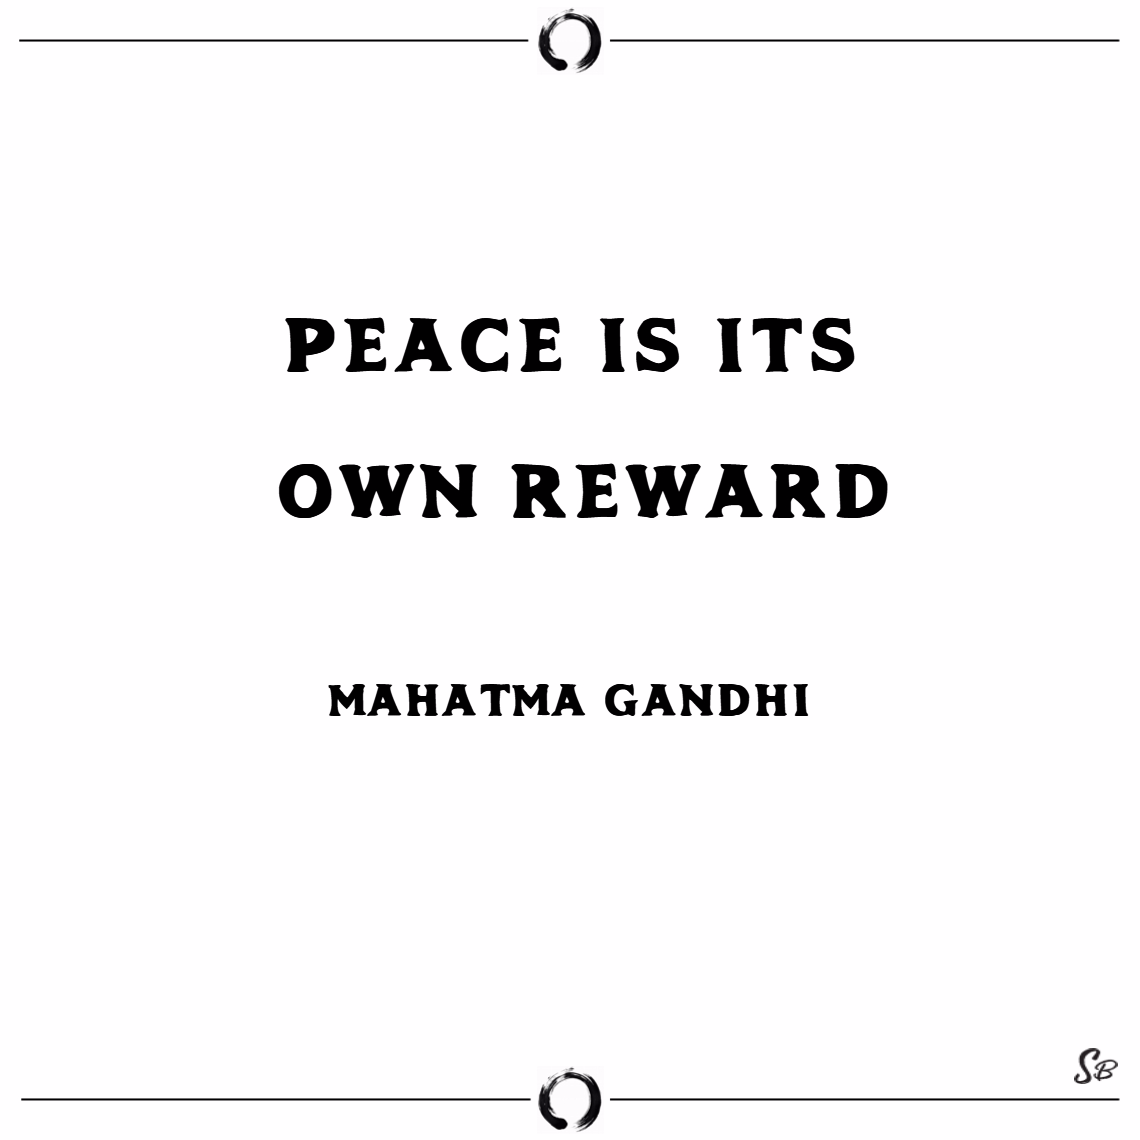 Peace is its own reward. – mahatma gandhi